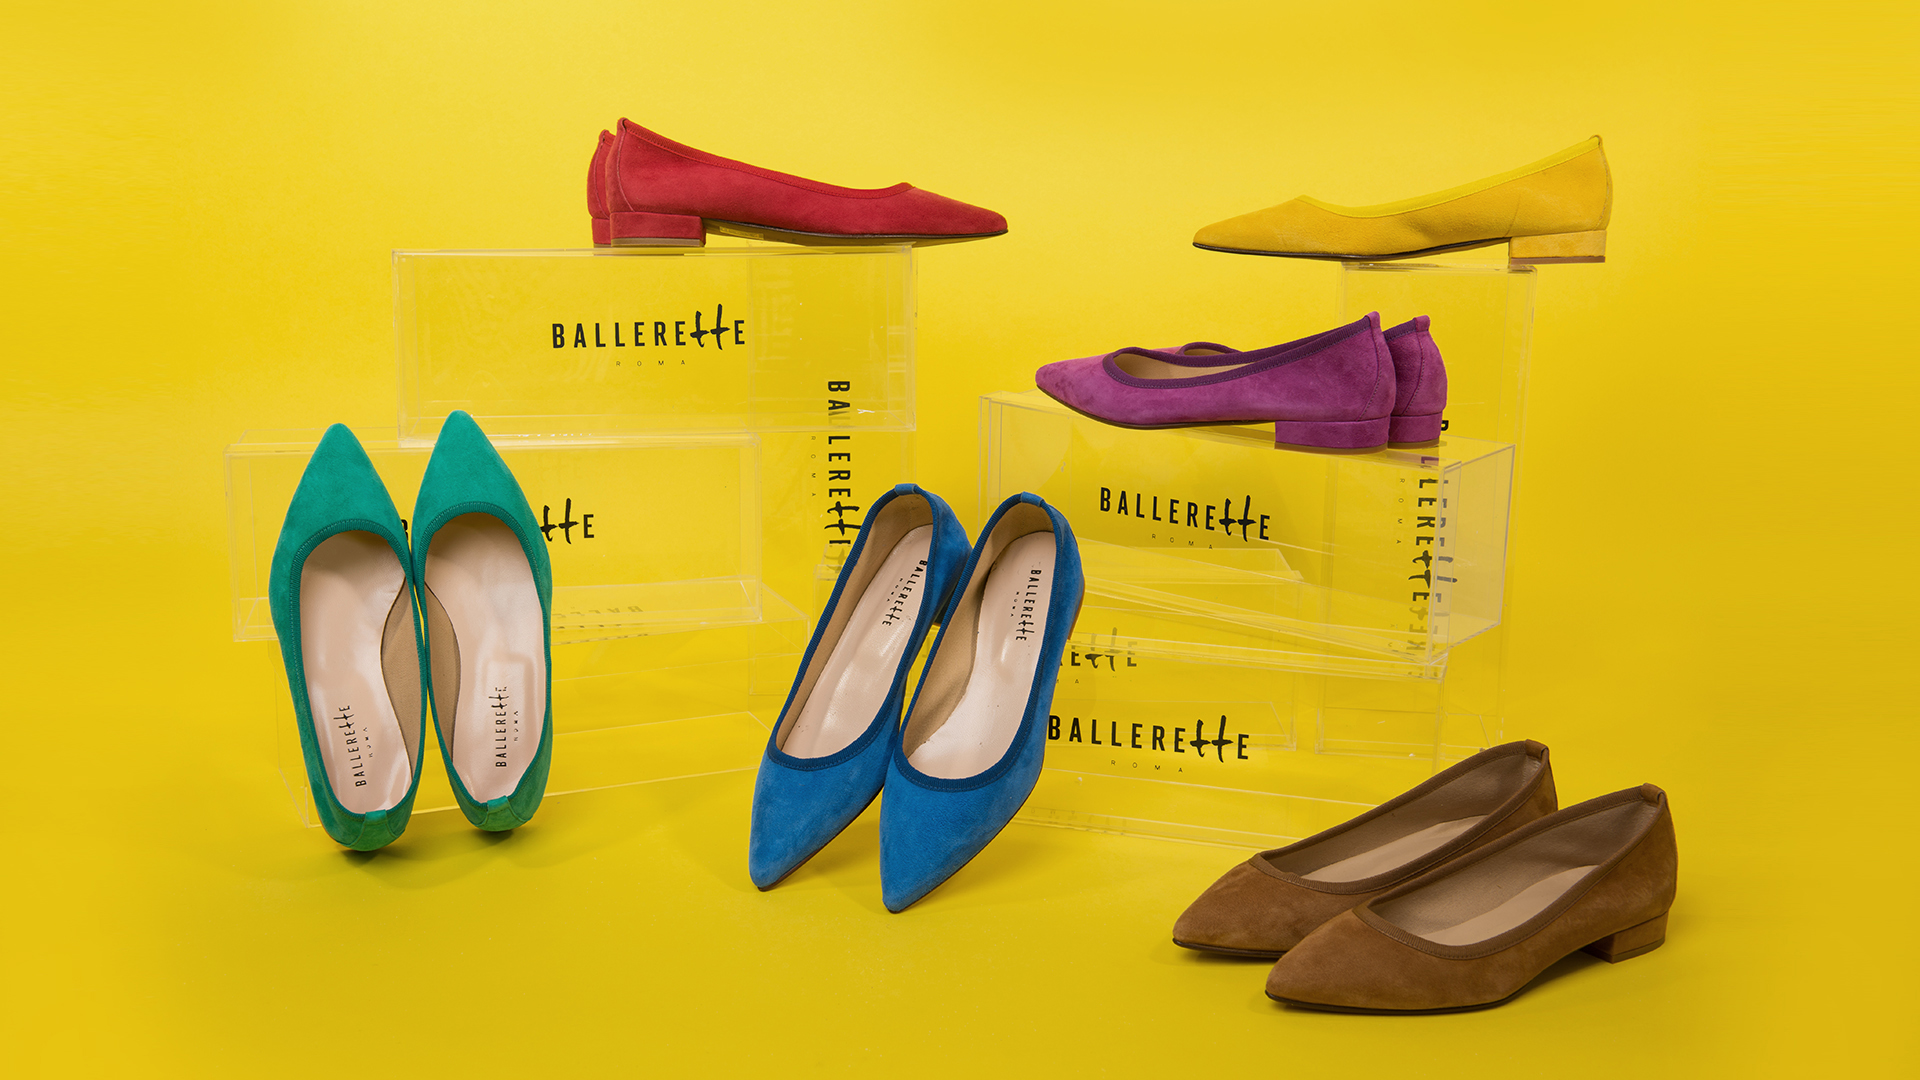 Classic pointed toe ballet flats